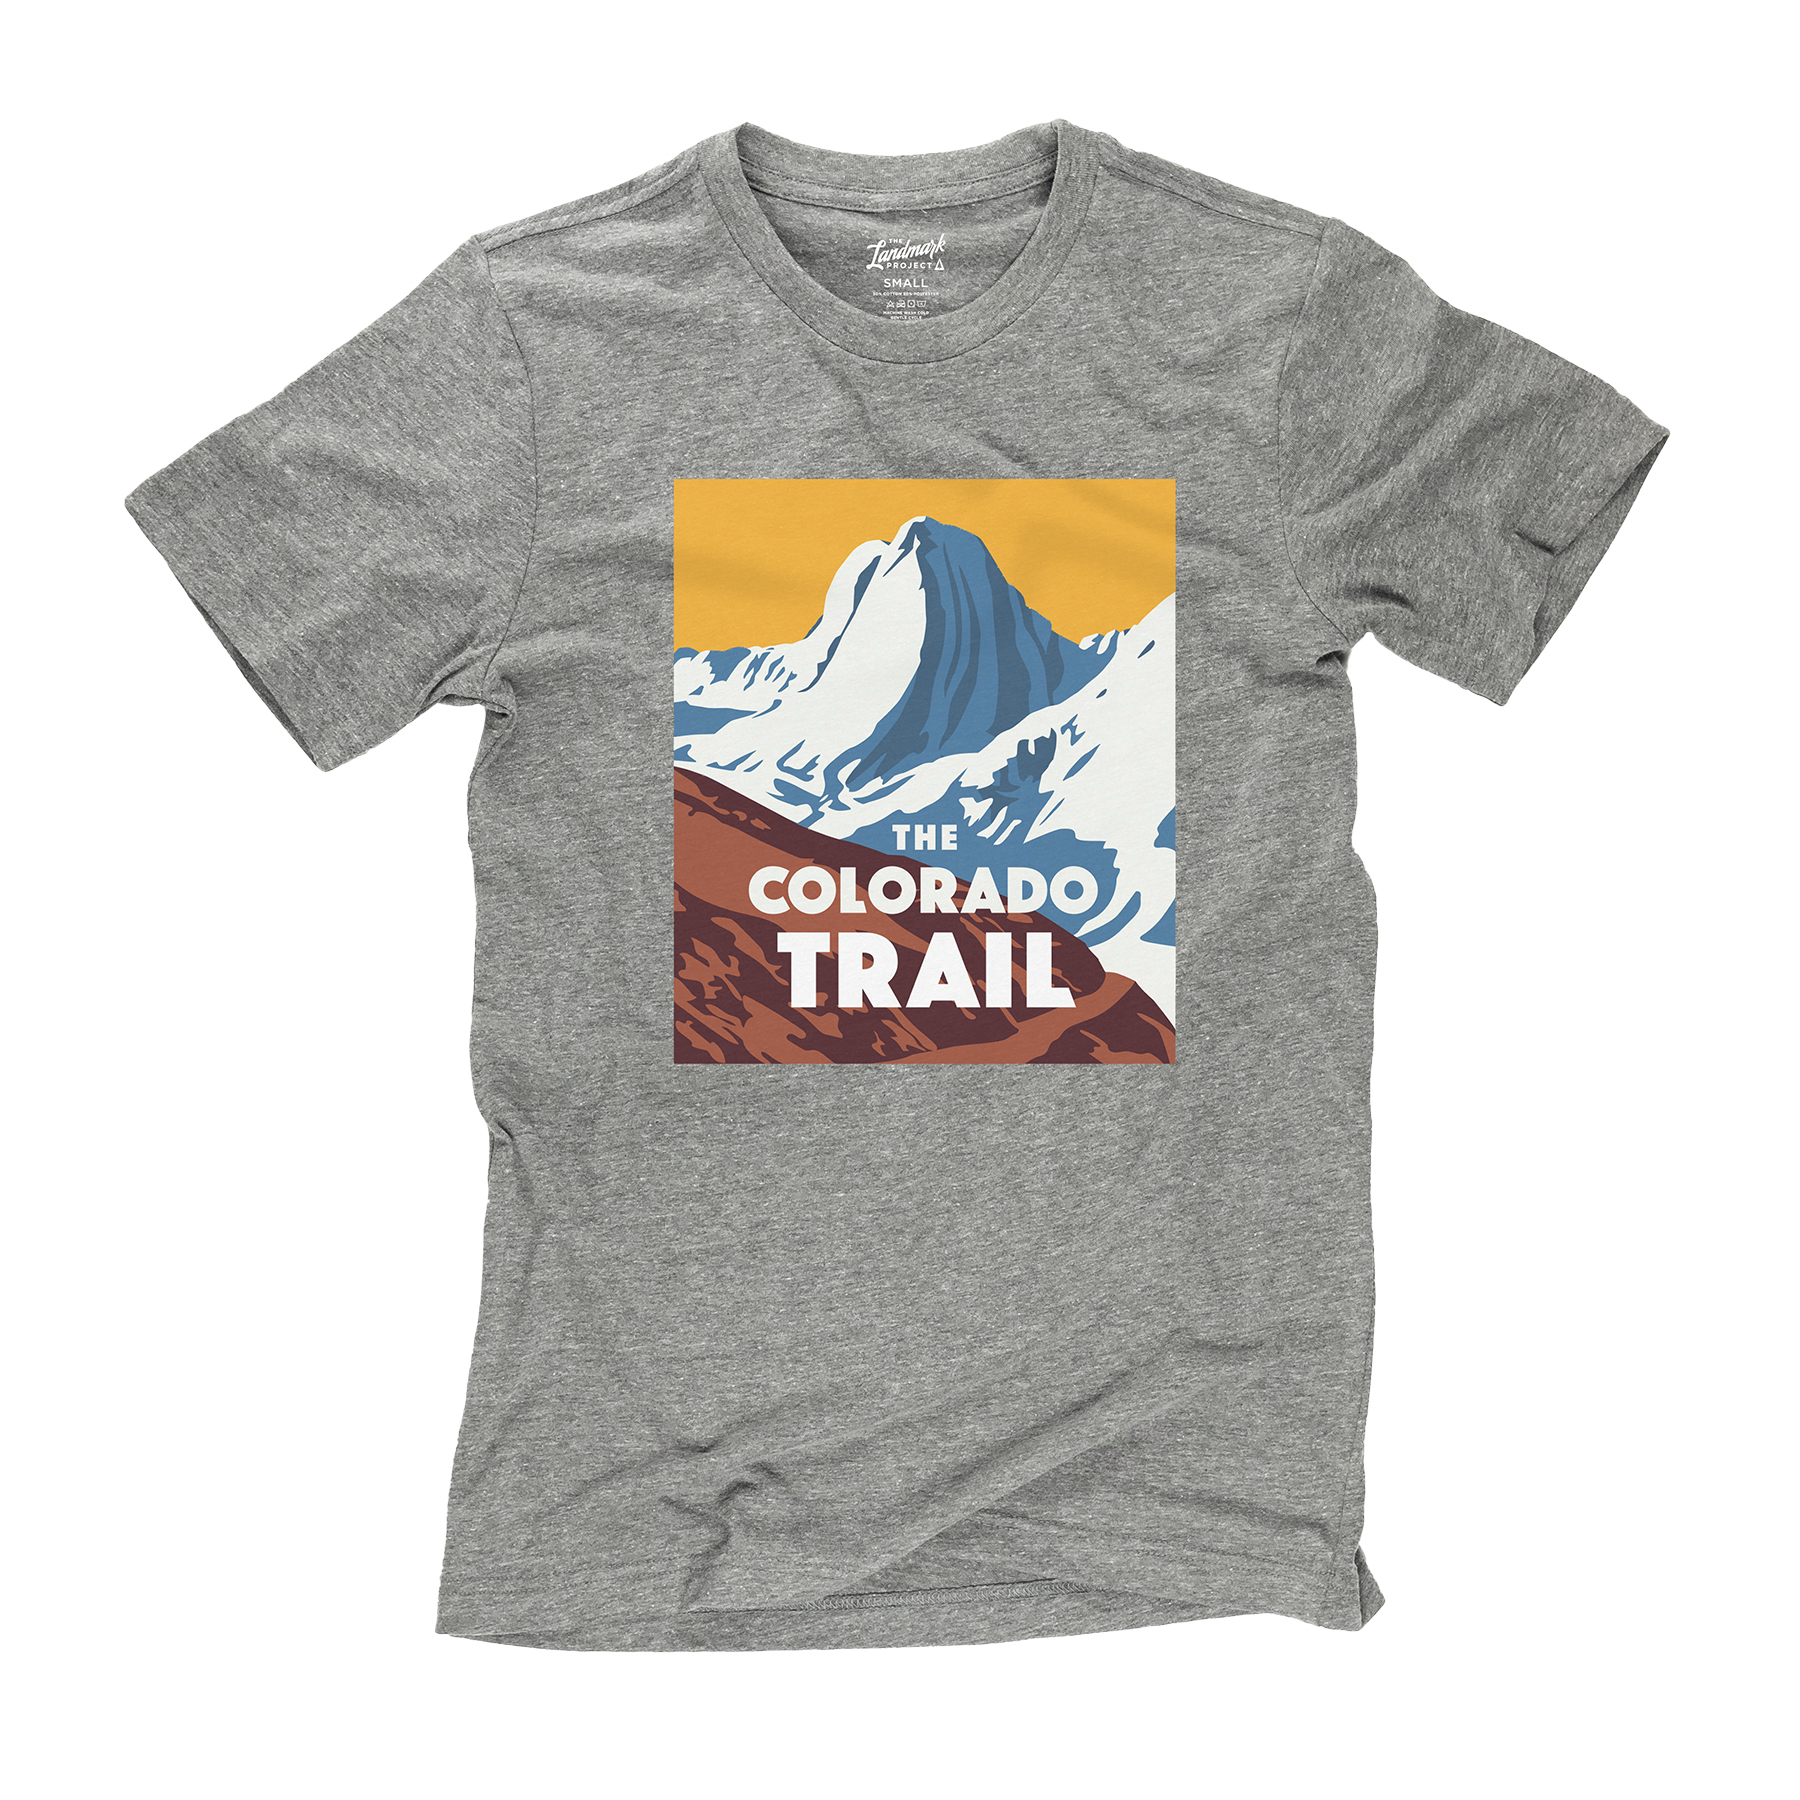 colorado-trail-grey-tee.jpg